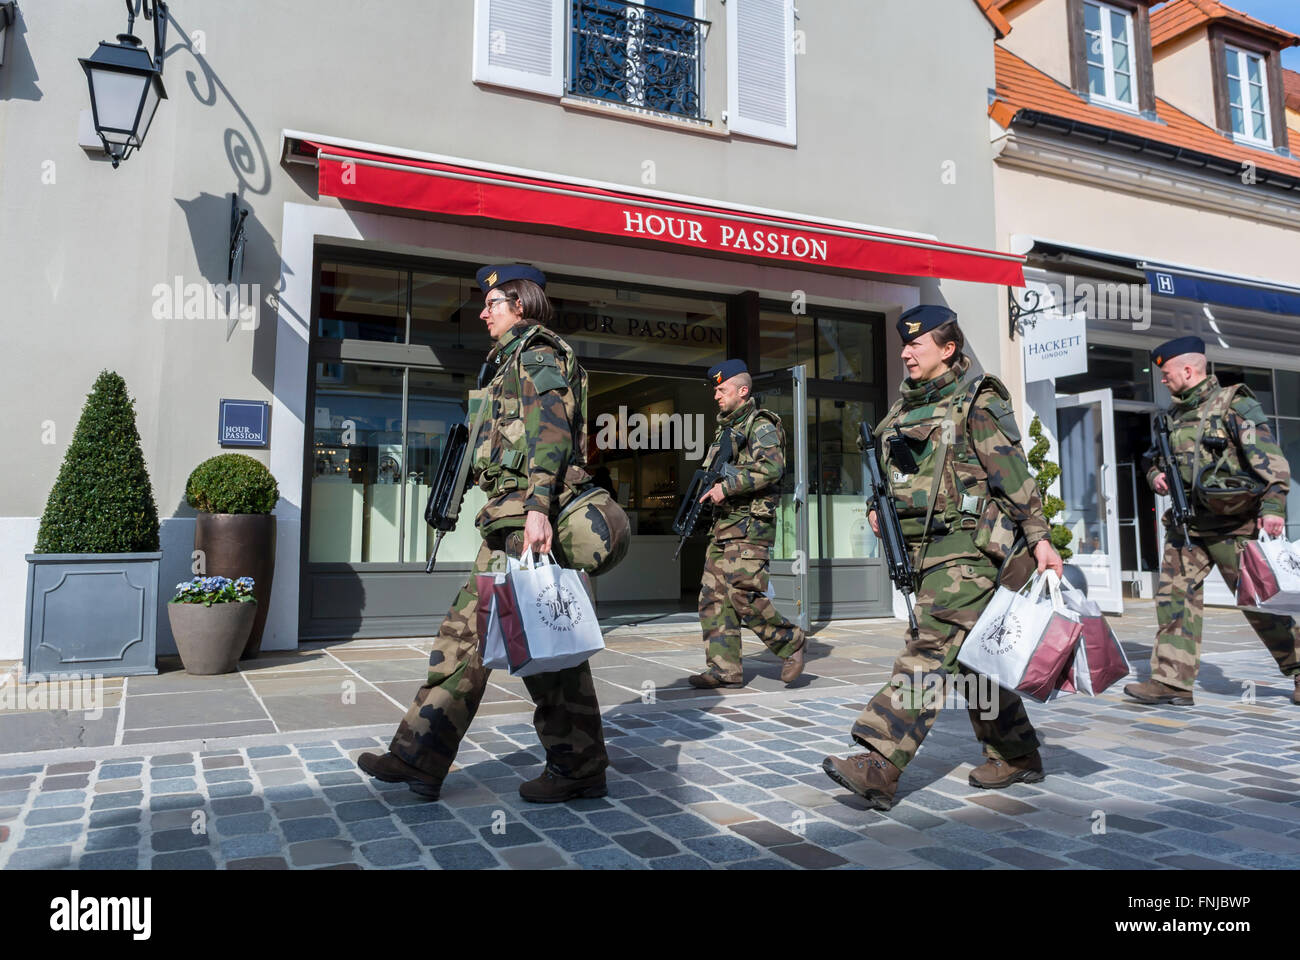 paris france french soldiers patrolling in shopping. Black Bedroom Furniture Sets. Home Design Ideas